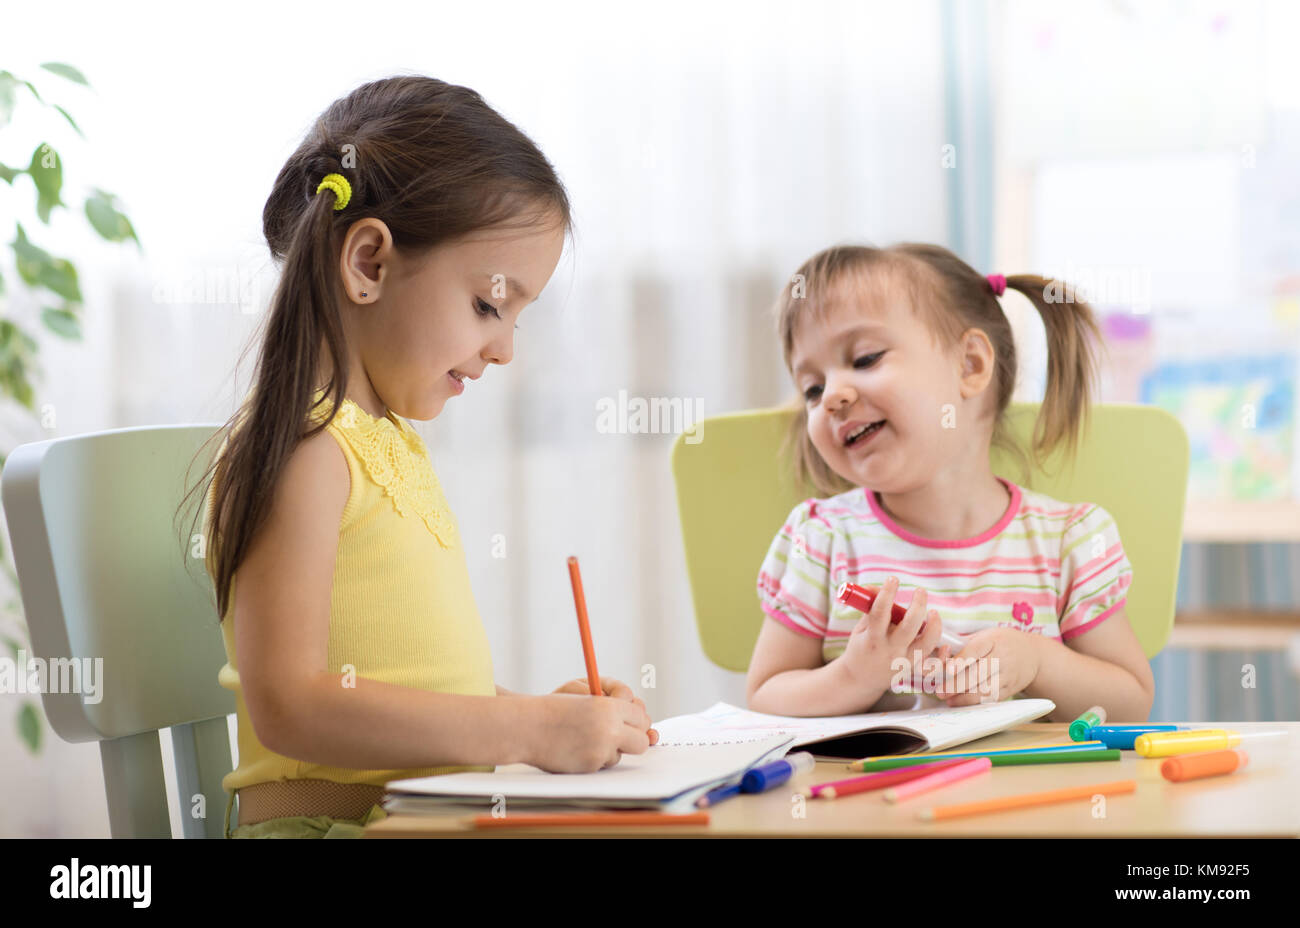 Kids drawing in kindergaten. Children painting in nursery. Preschooler with pen at home. Creative toddlers. Stock Photo